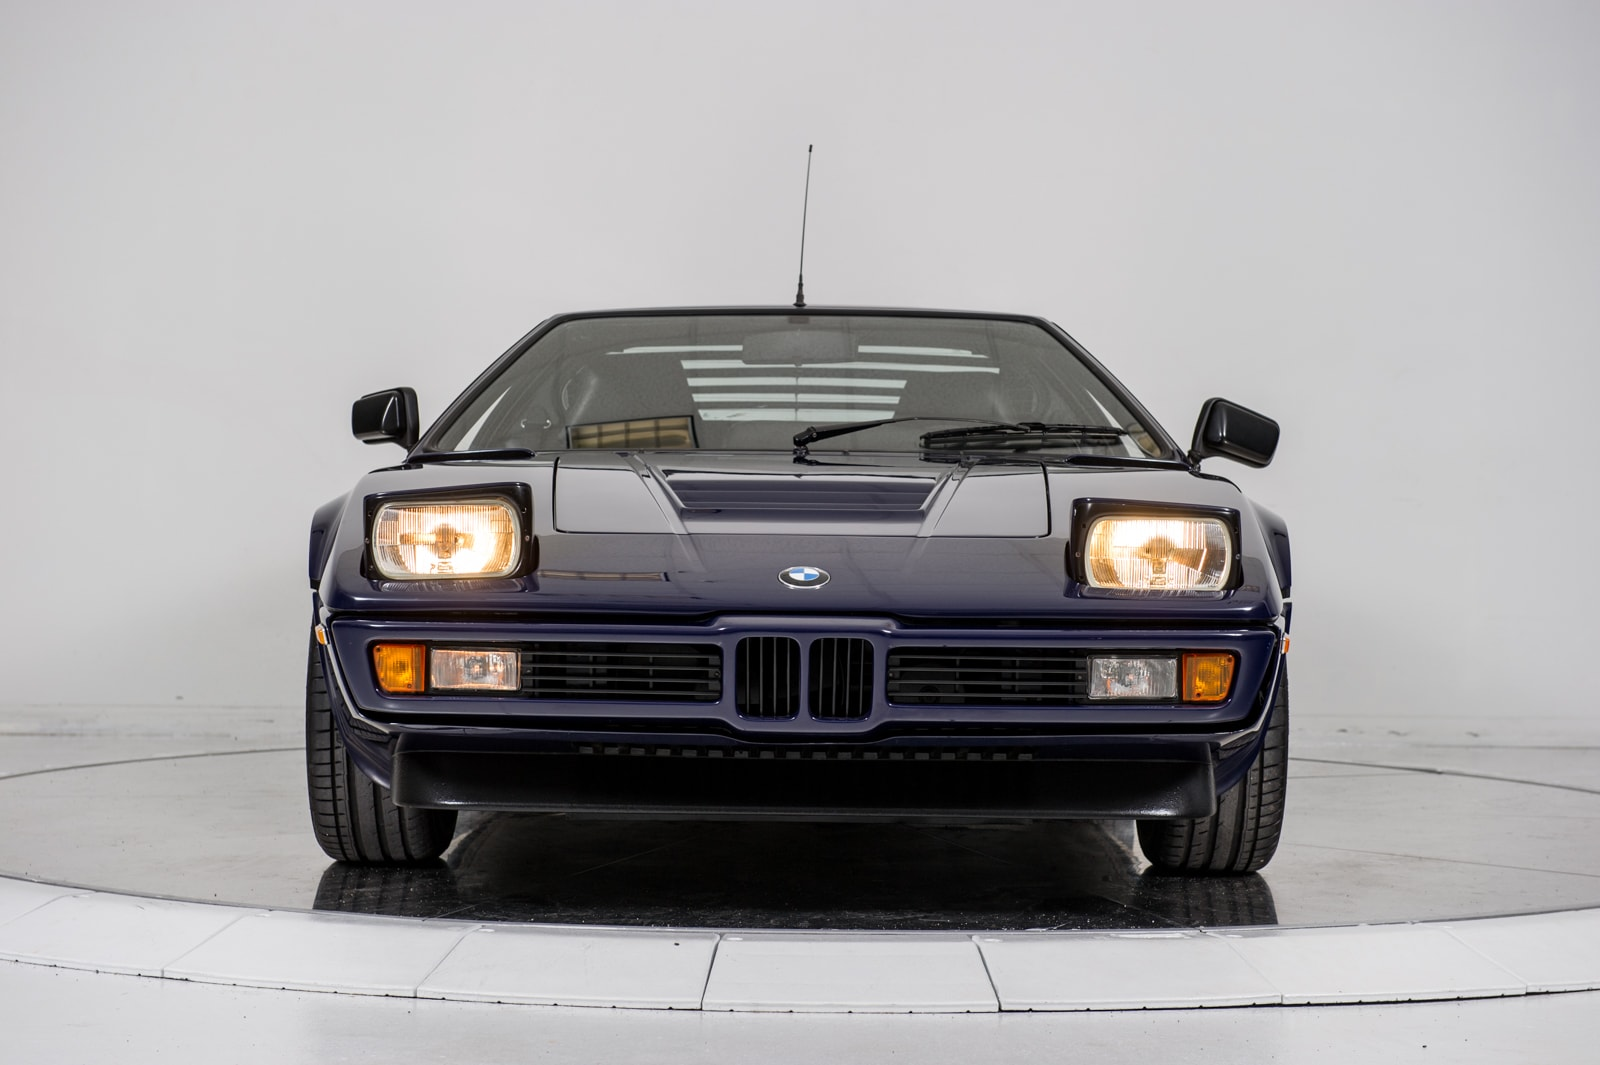 used 1979 bmw m1 for sale plainview near long island ny vin wbb25991000430101. Black Bedroom Furniture Sets. Home Design Ideas